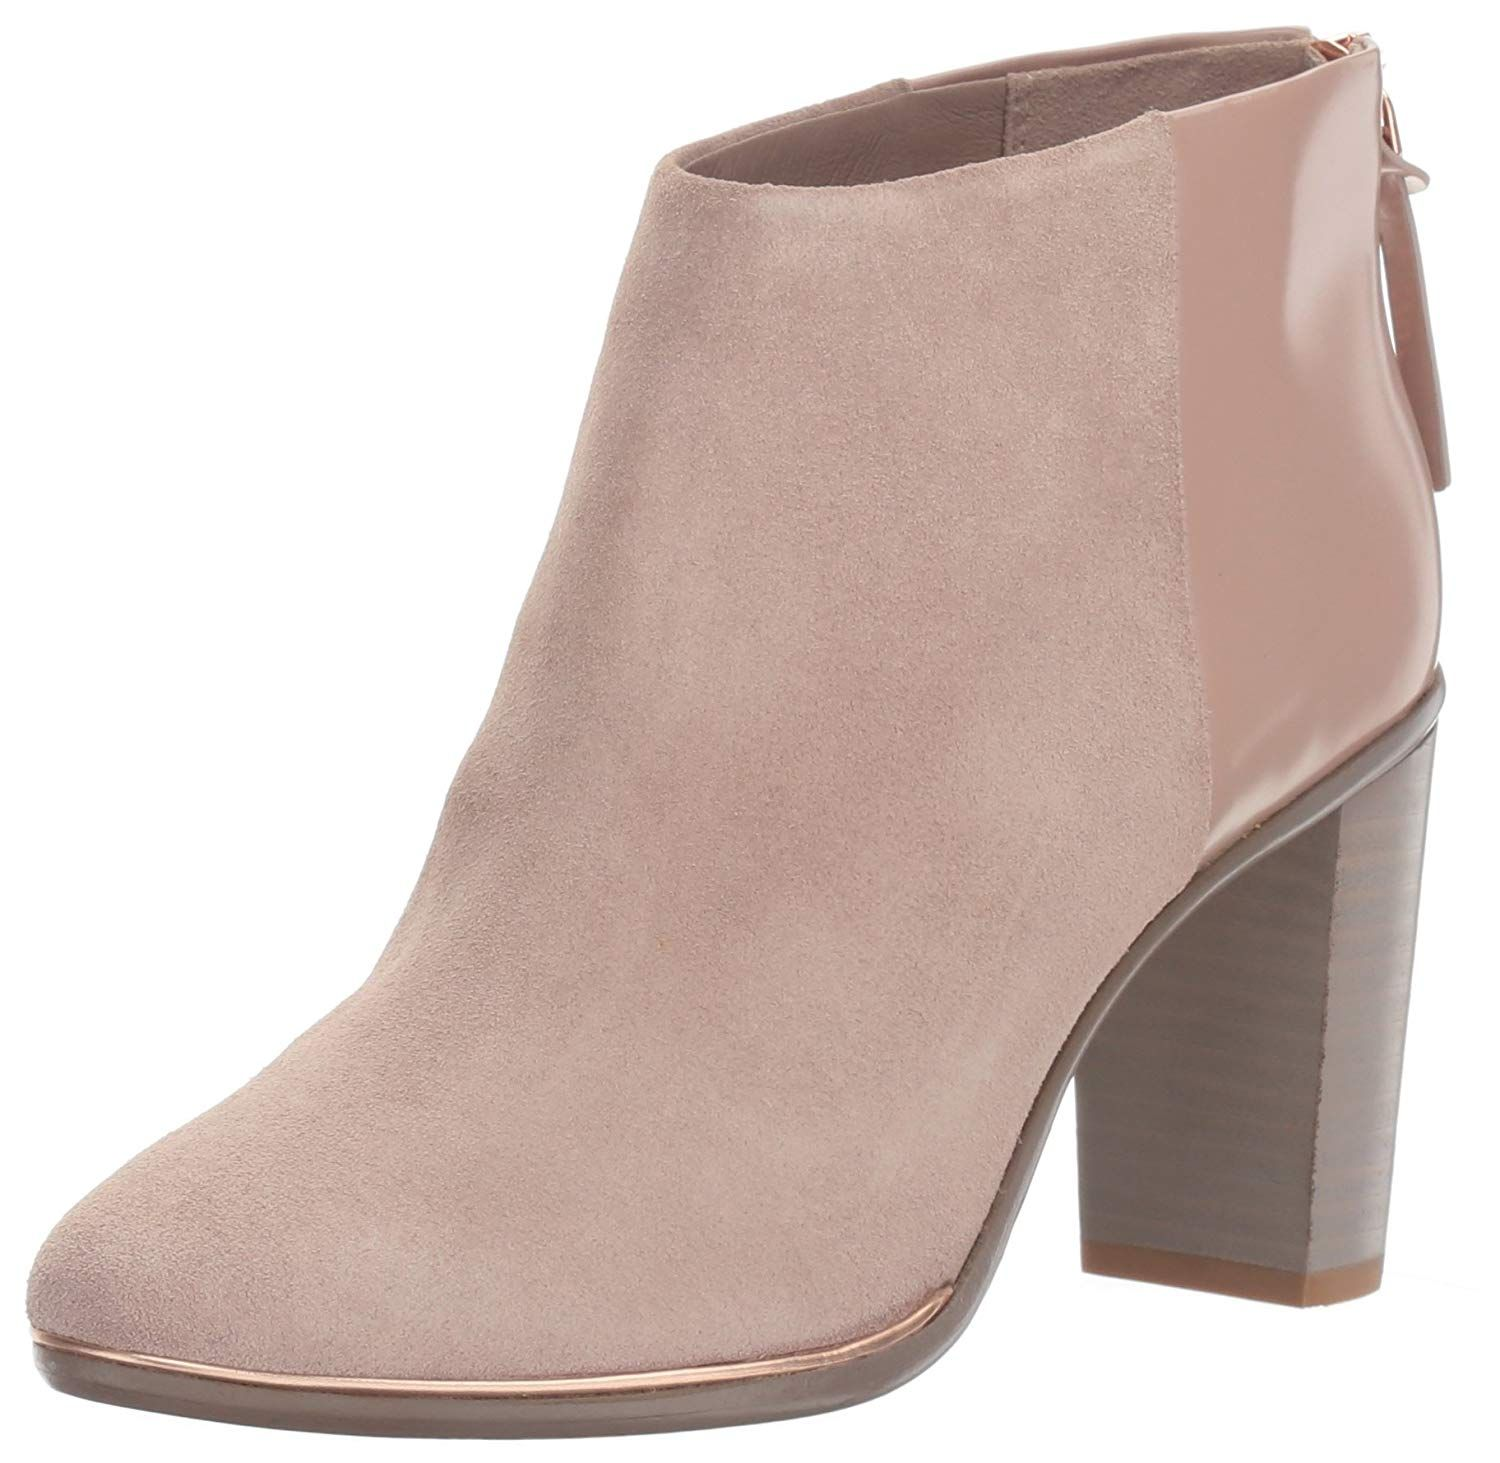 2011b85835d9 Soft leather and suede ankle boot with stained leather stack heel. an  exposed metal zip with branded leather pull, touch of metallic piping at ...